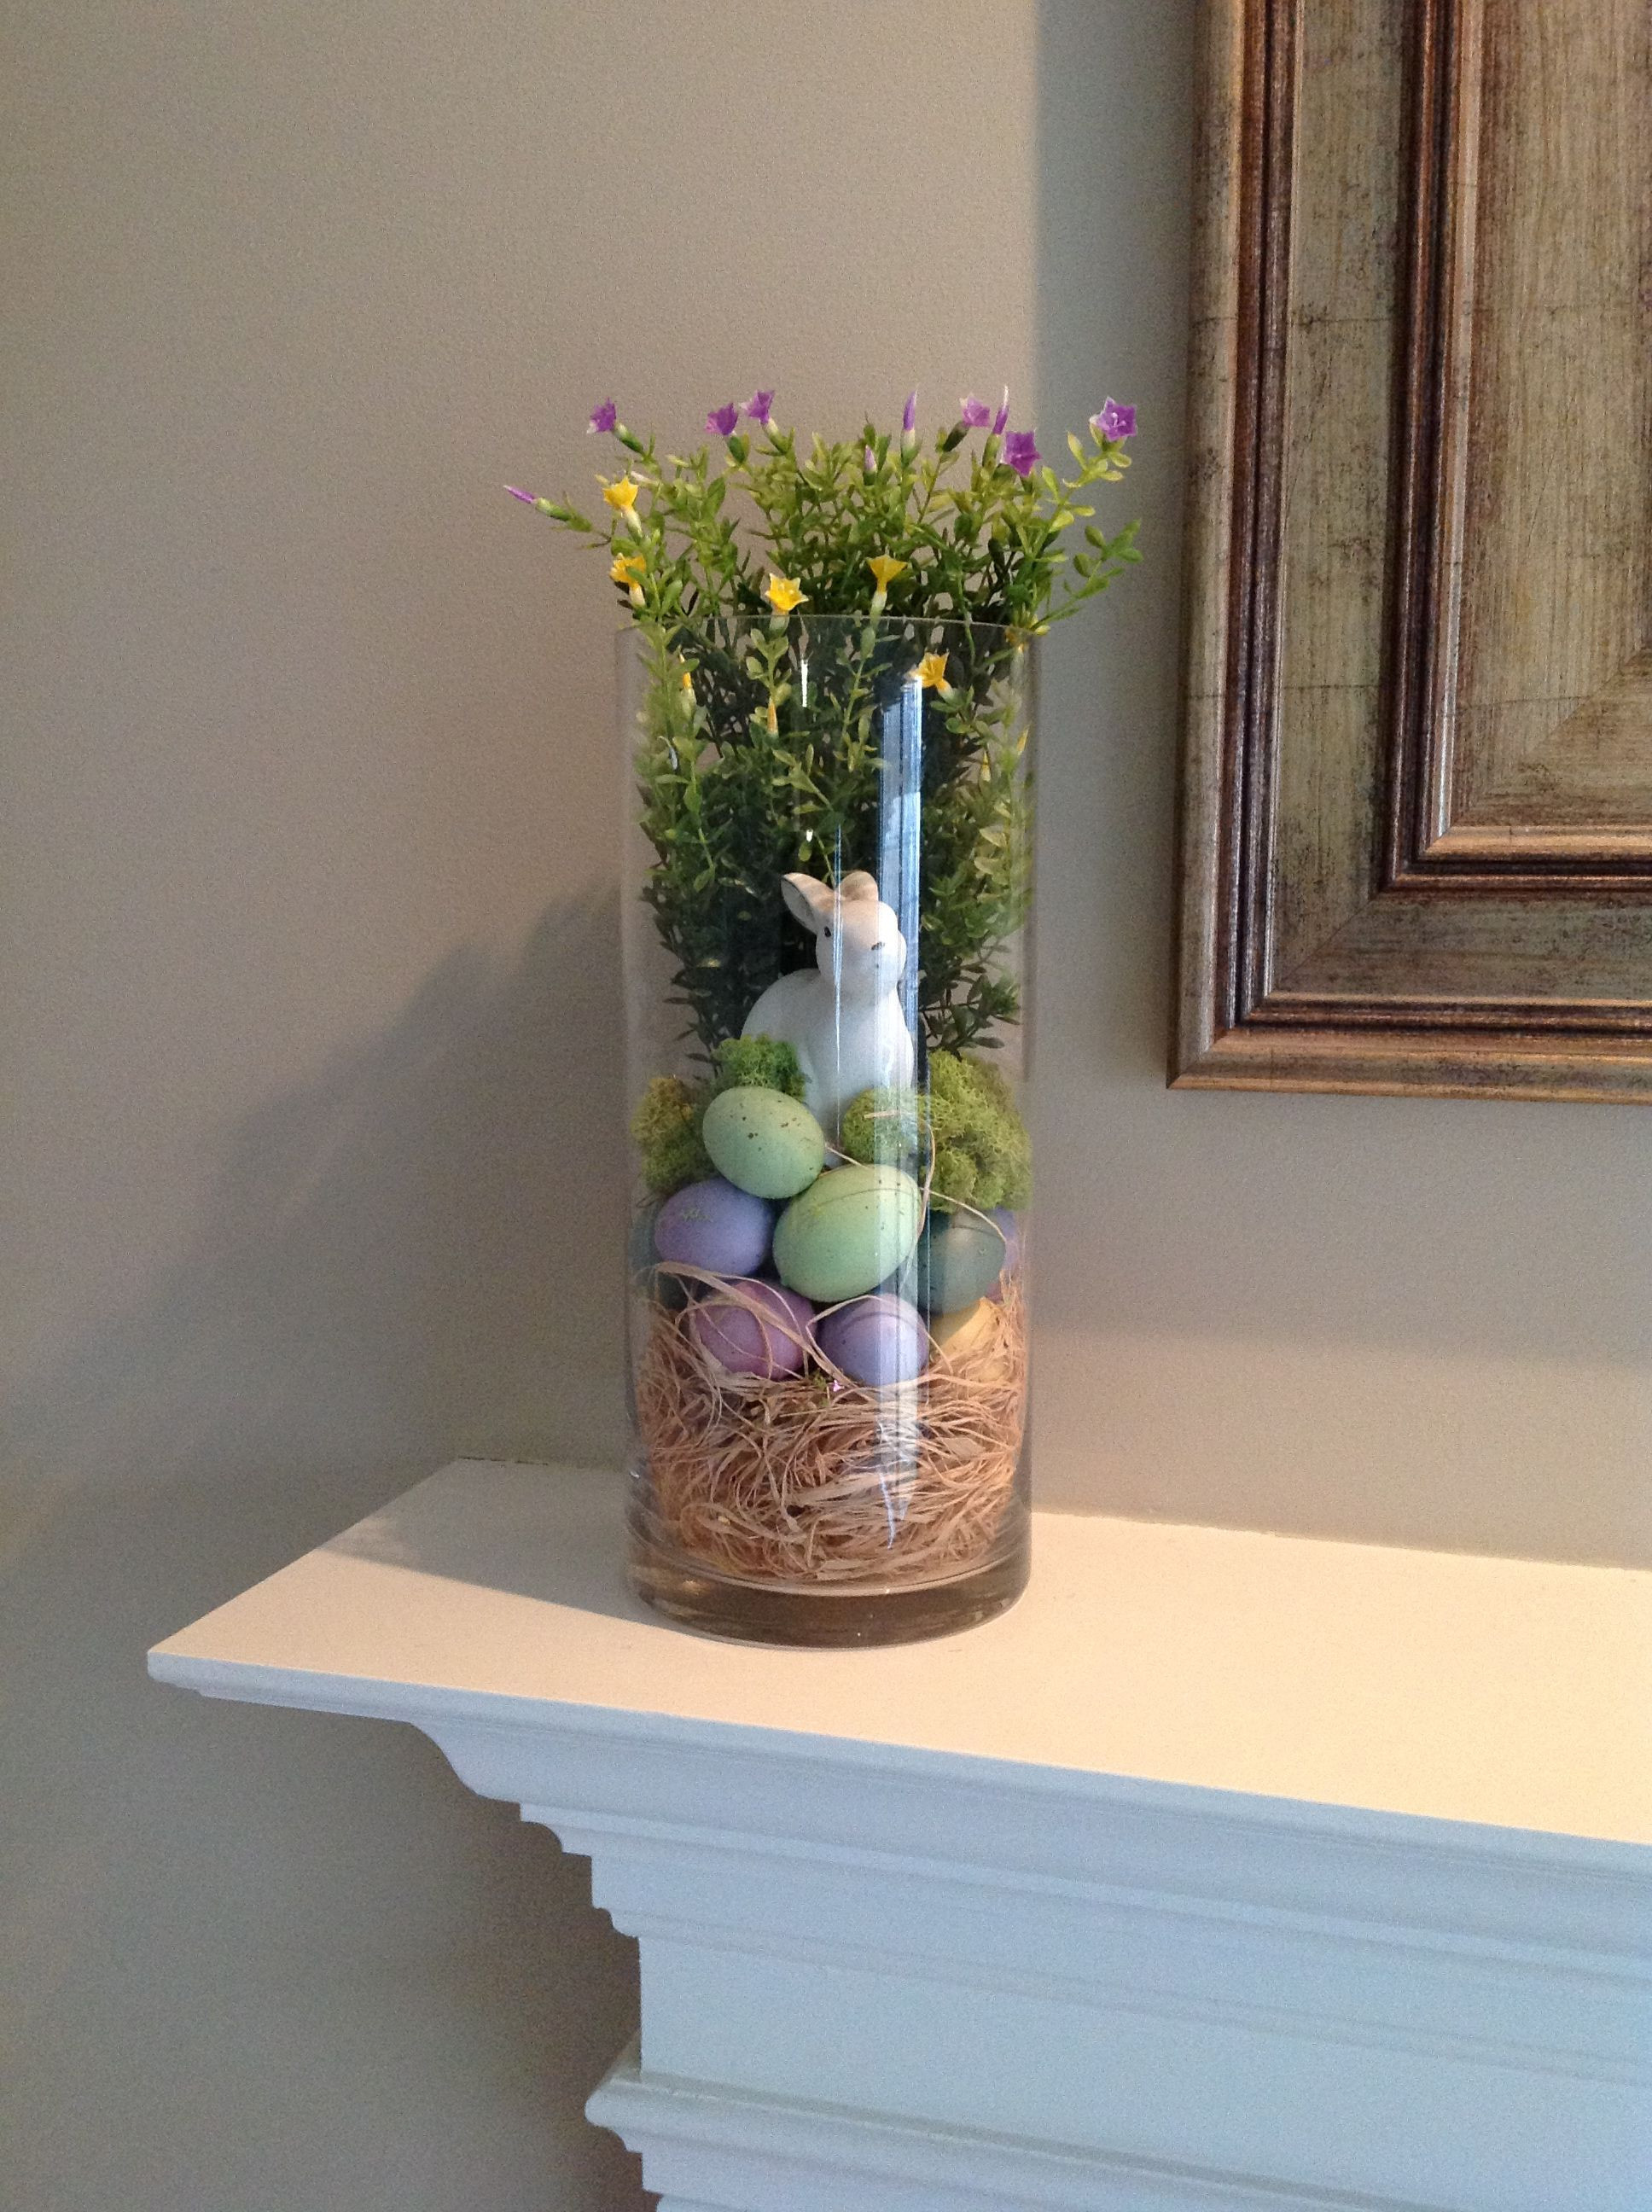 Gold Glitter Vase Of Gold Vase Filler Gallery Cheap Fall Decorations 15 Cheap and Easy Regarding Gold Vase Filler Collection Hurricane Glass Vase Filler for Spring and Easter On the Mantel Of